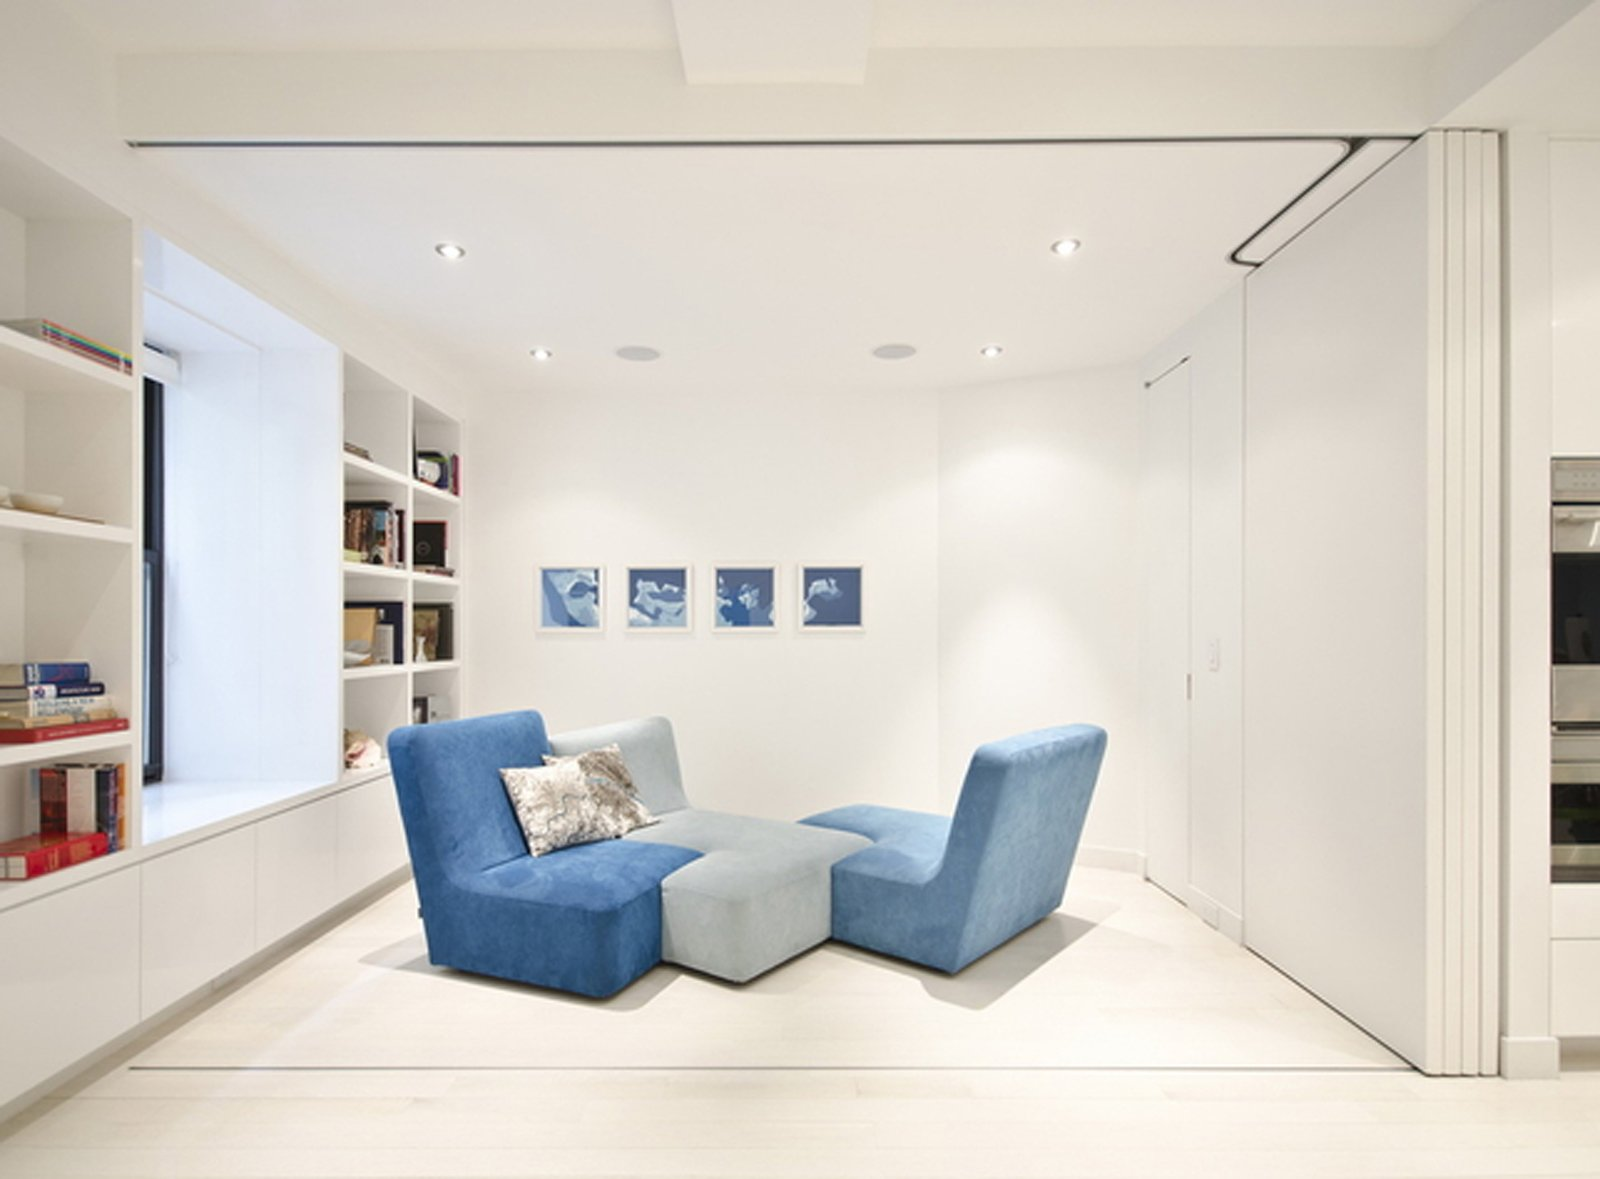 Here's the room with the doors fully opened. The sofa is by Ligne Roset.  University Place Apartment by Diana Budds